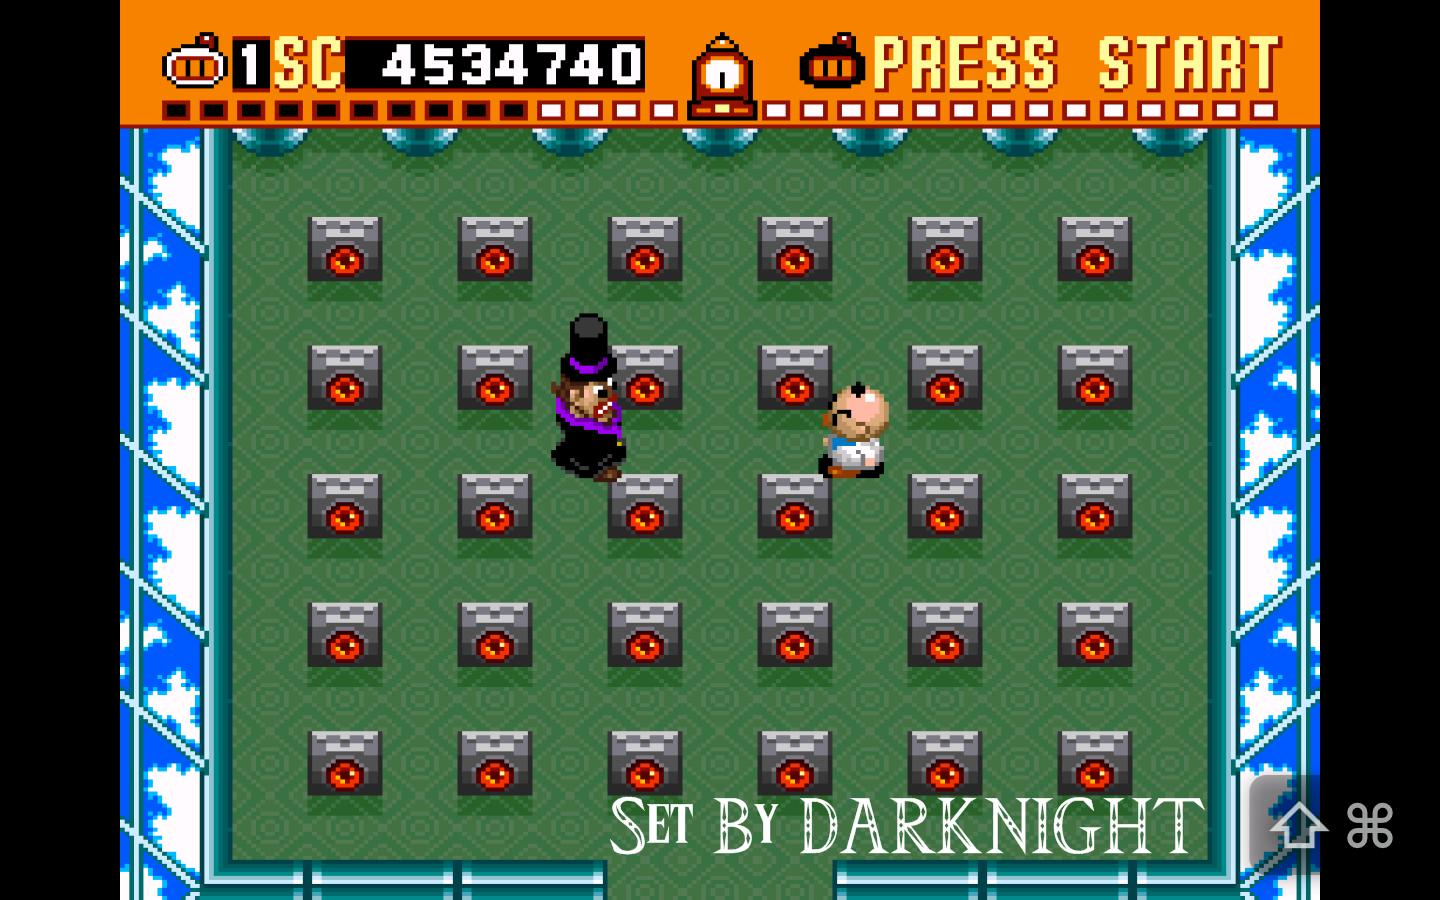 Super Bomberman 4,534,740 points